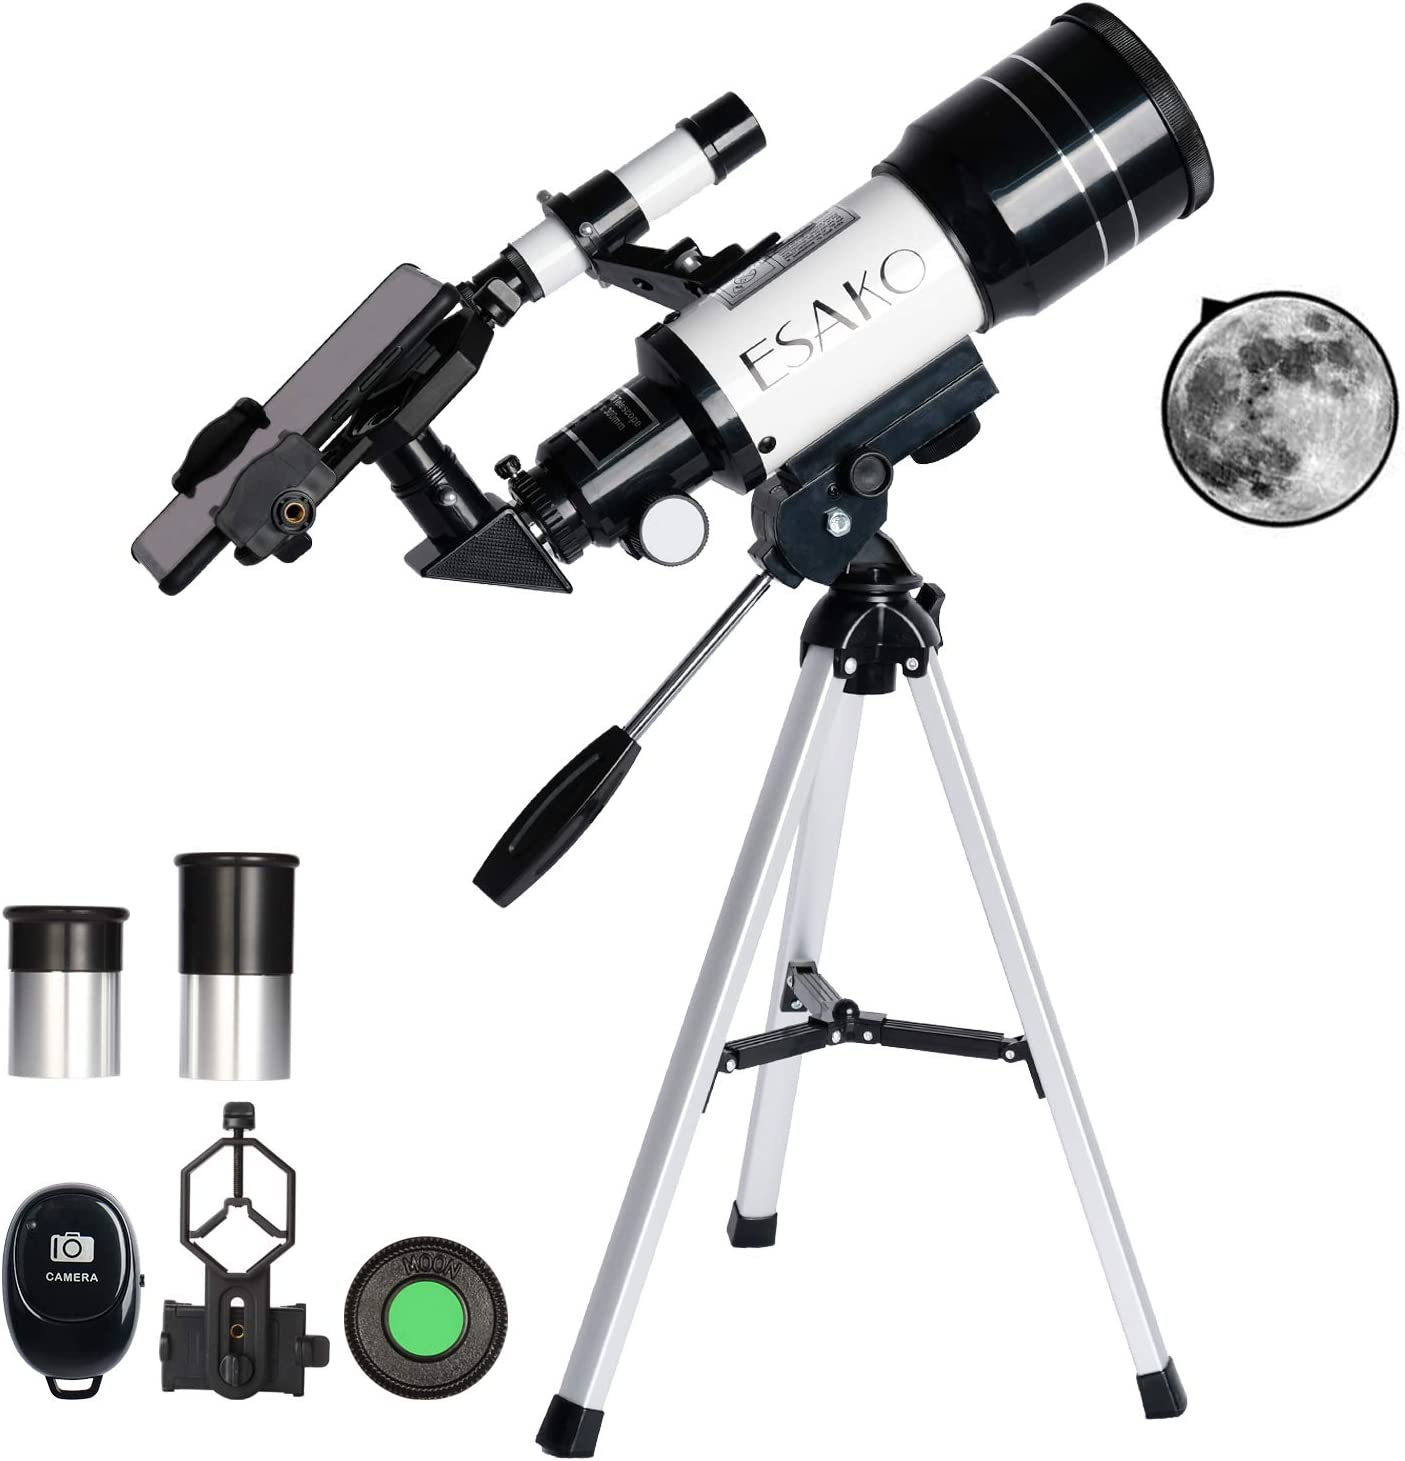 Black Owill 70mm Refractor Telescope for Astronomy Telescope Astronomy for Adults Kids Beginners Astronomical Refractor Travel Telescope with Tripod Beginners Adults Moon Star Observation,Wide